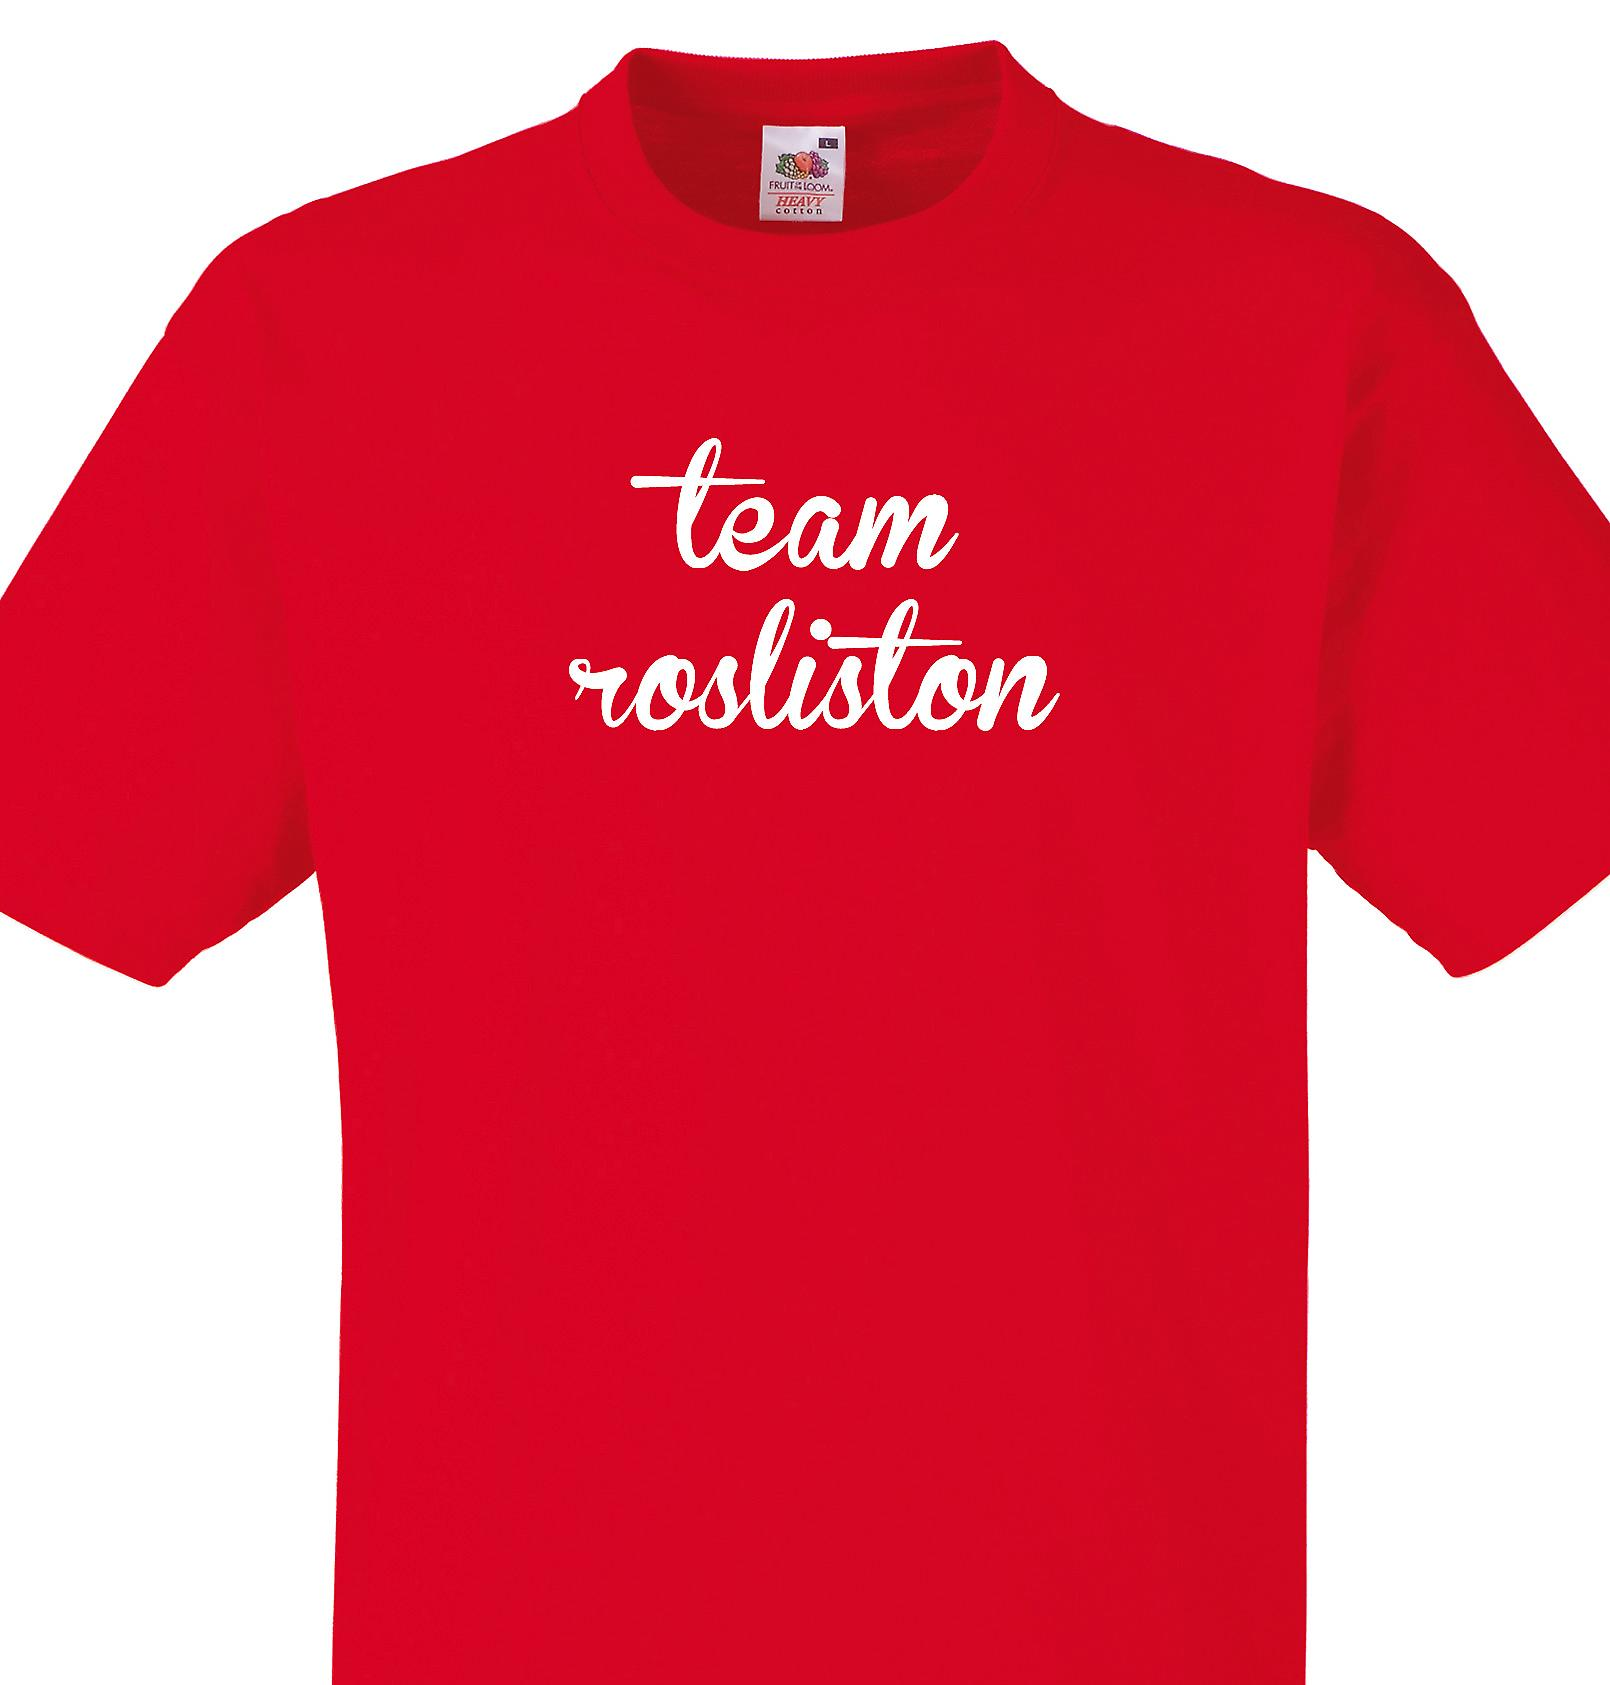 Team Rosliston Red T shirt